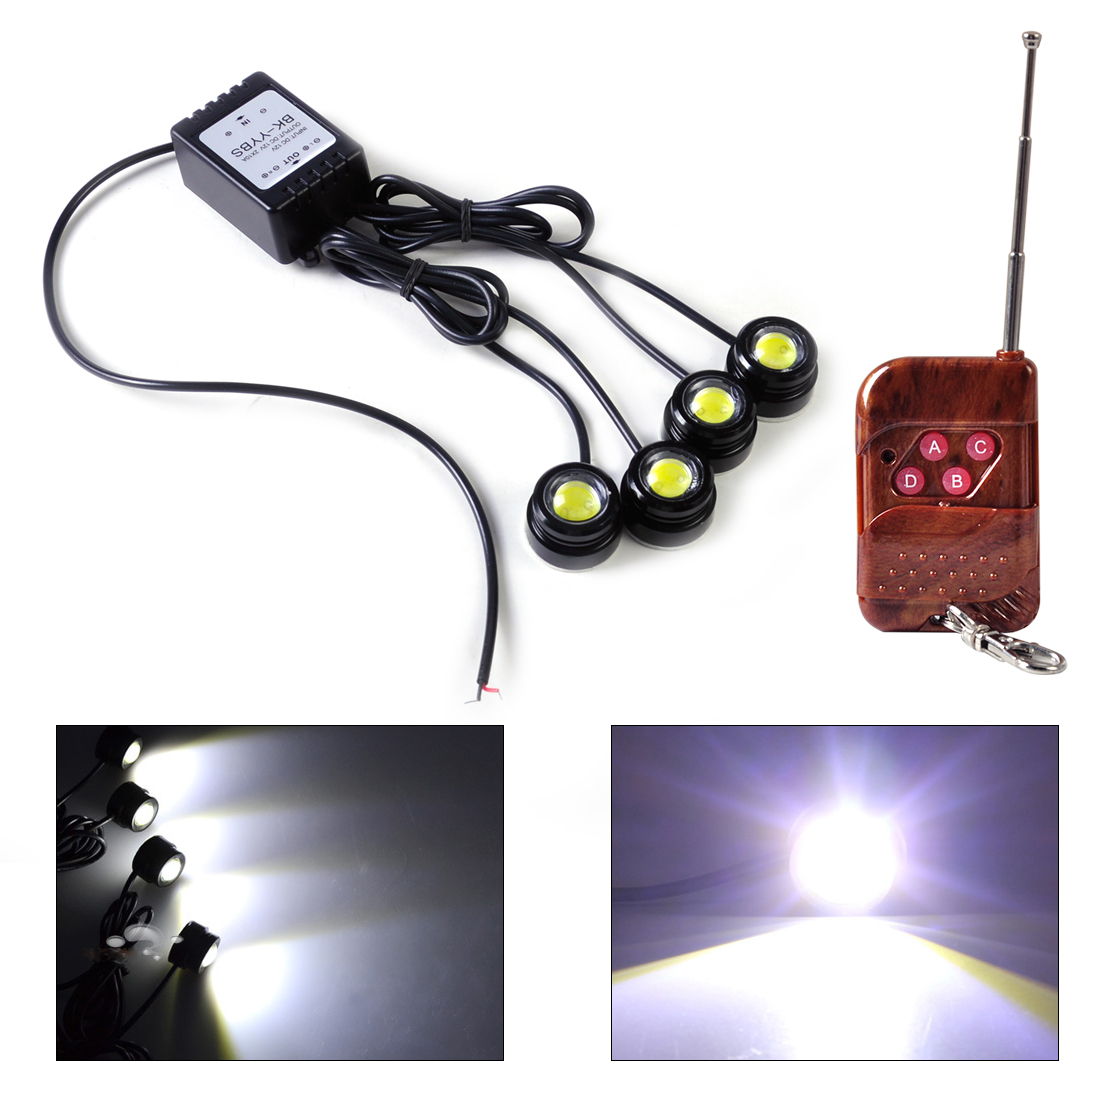 Beler New 4in1 12v Eagle Eye Hawkeye Led Strobe Lights Lamp Drl Wireless Remote Control For Vw Polo Audi A4 Nissan Toyota Honda In Car Light Embly From